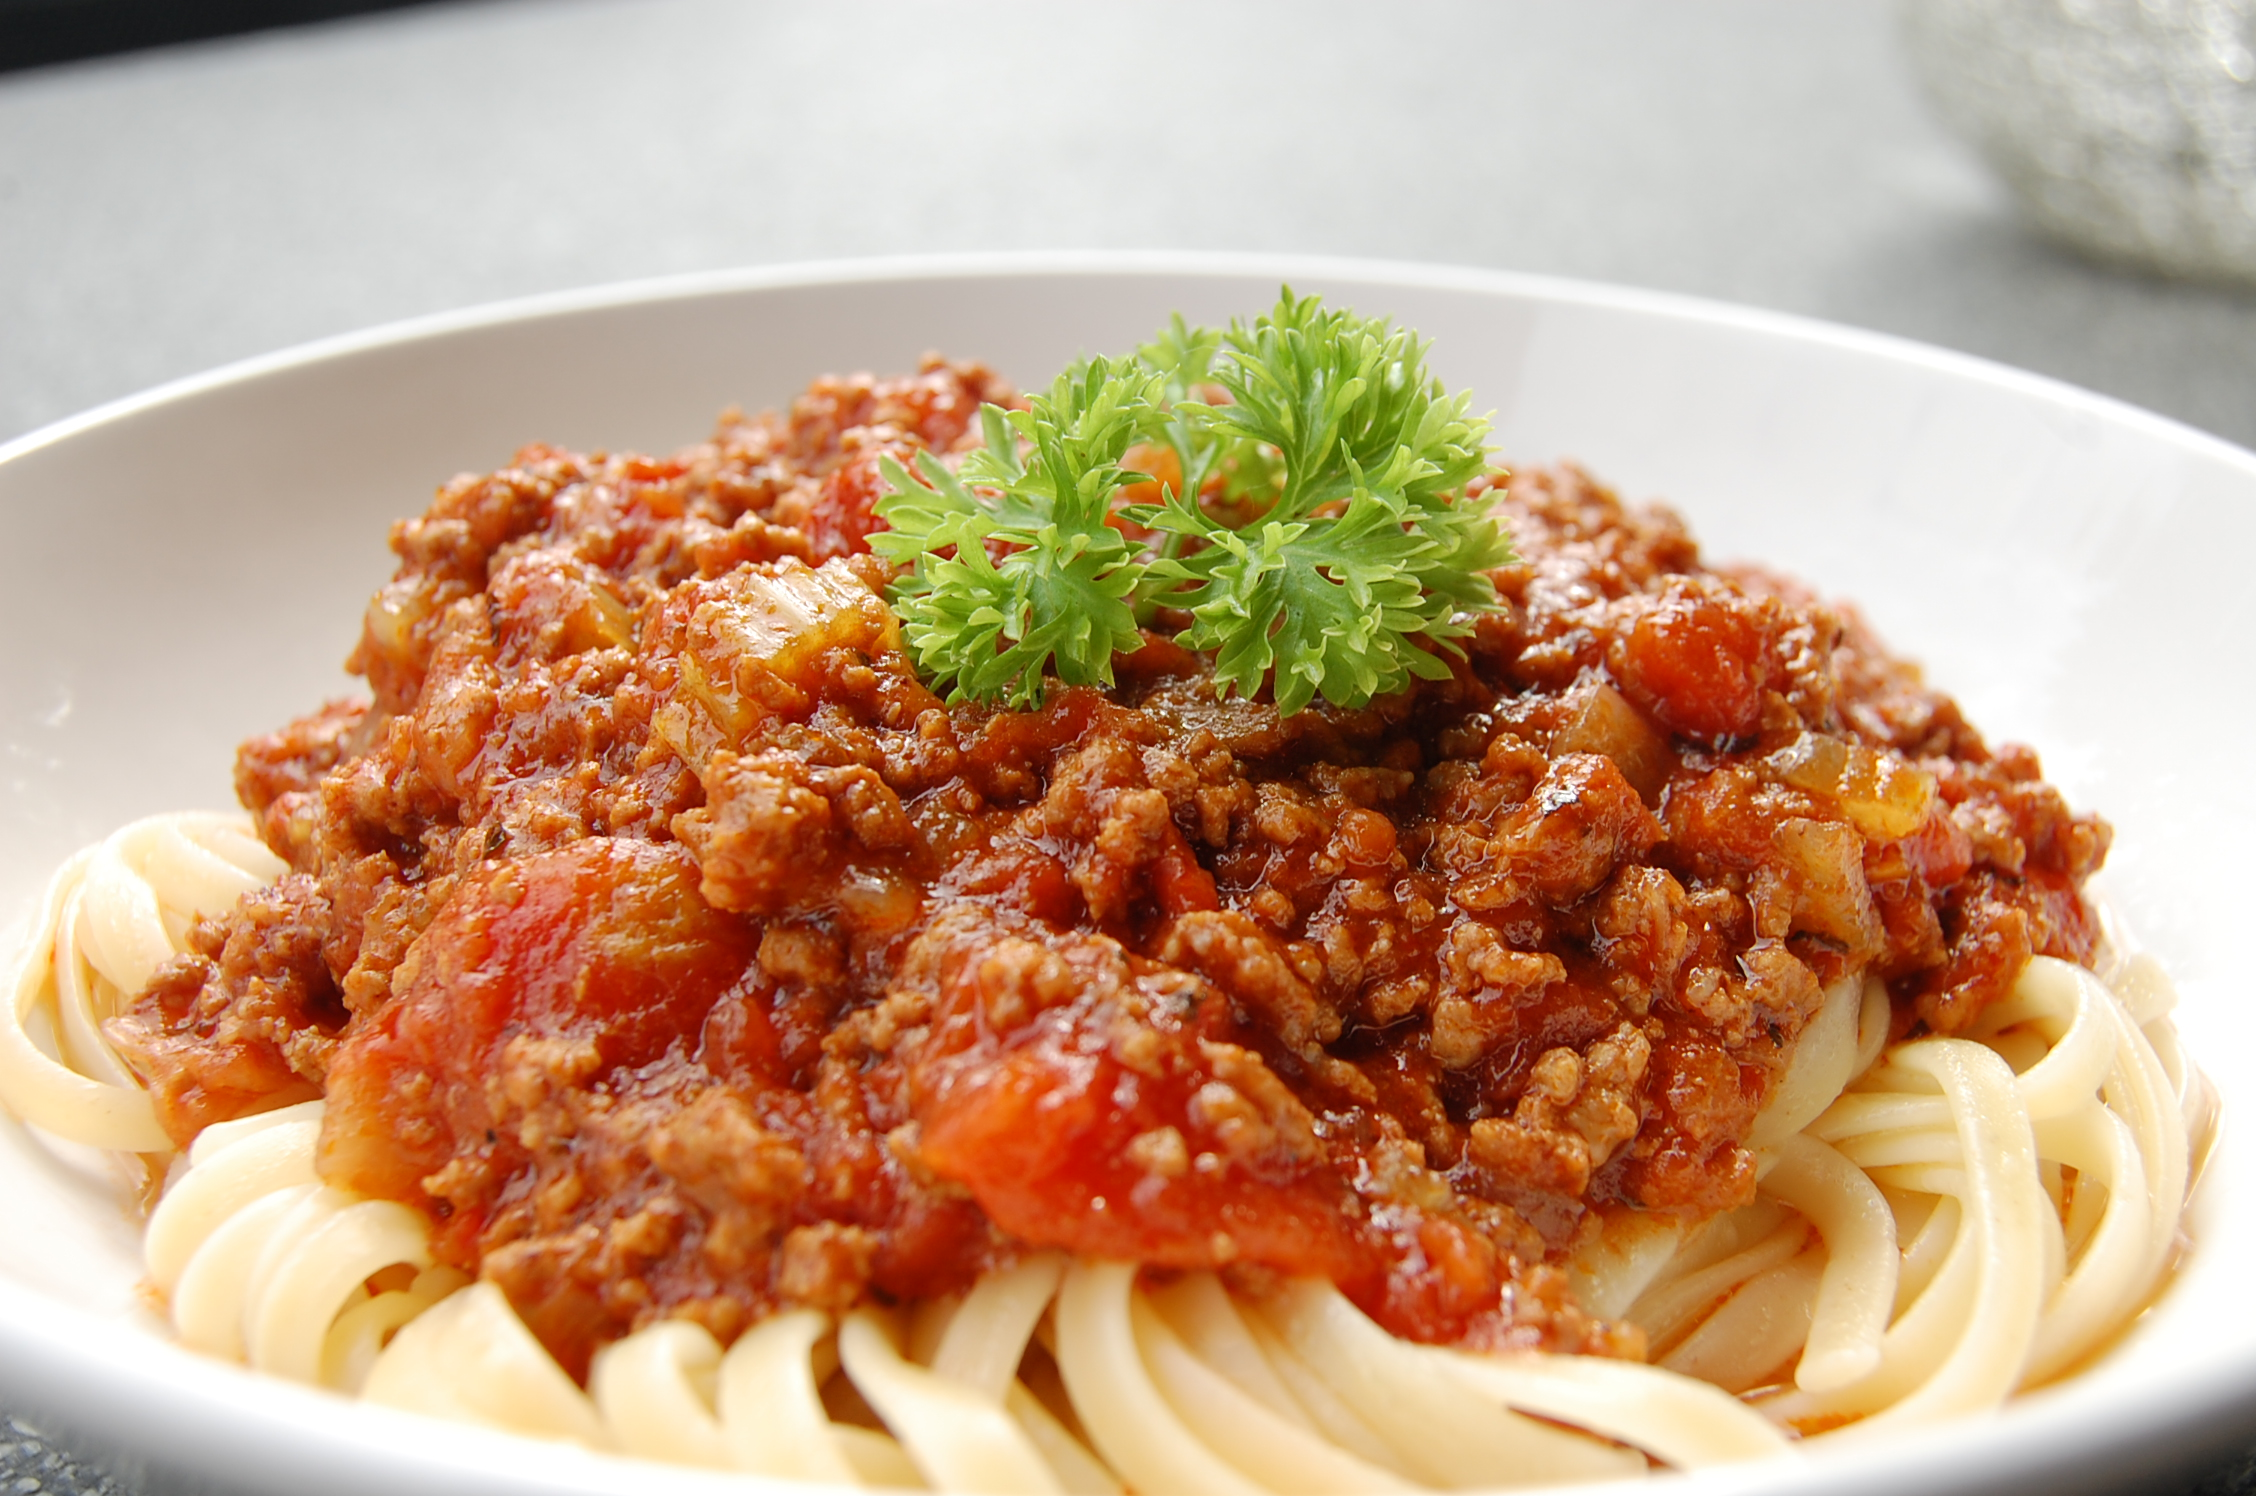 Spaghetti with Meatsauce